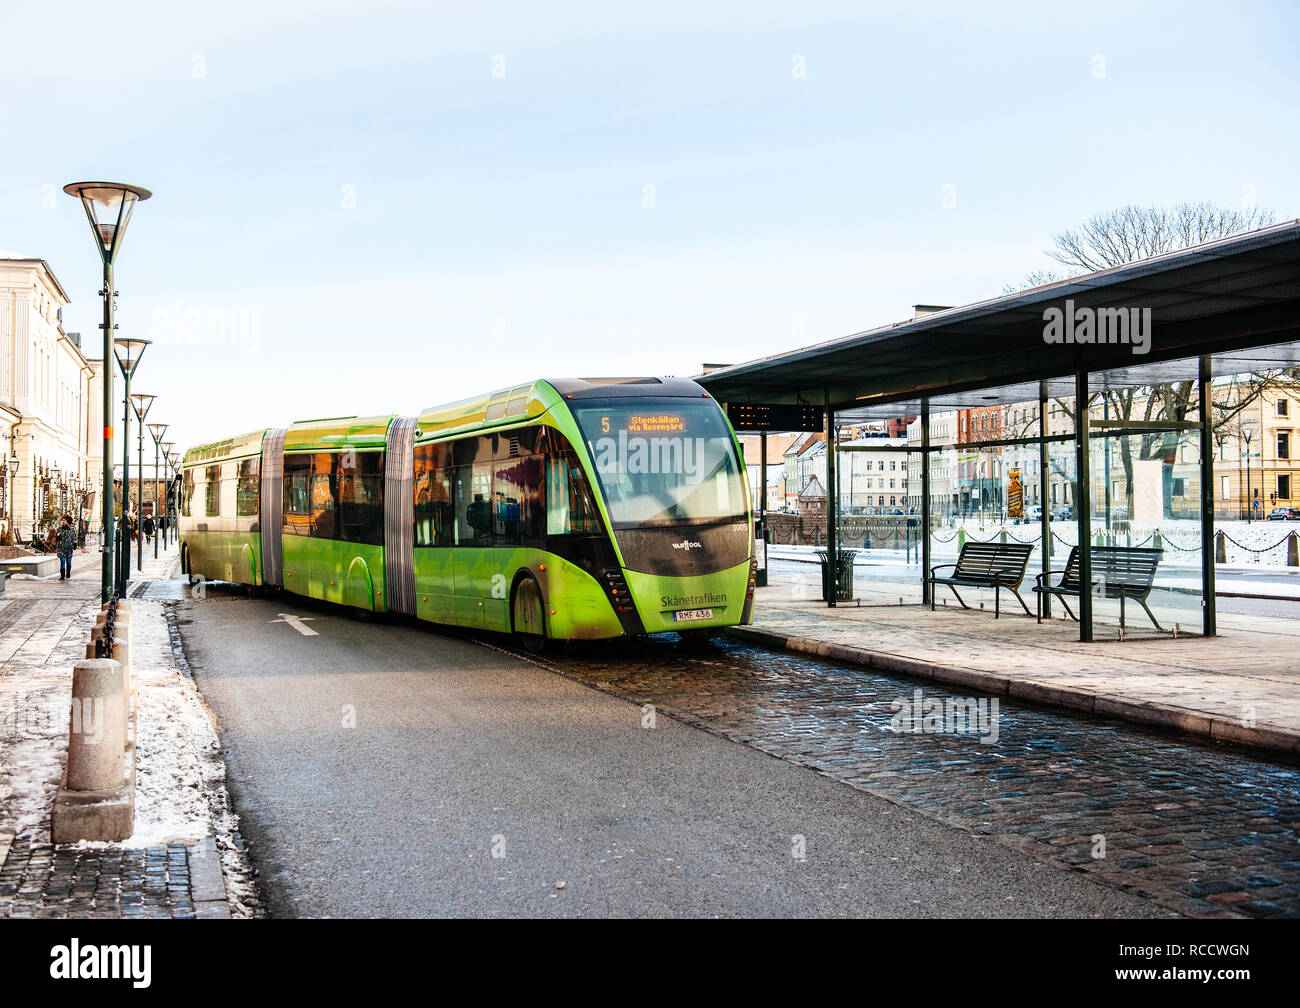 MALMO, SWEDEN - 29 DEC 2014: double articulated bus Van Hool 324H Exequicity 24 Hybrid operated by Skanetrafiken arriving in bus station on a cold winter day - ecologic public transportation line 5 in Malmo  - Stock Image